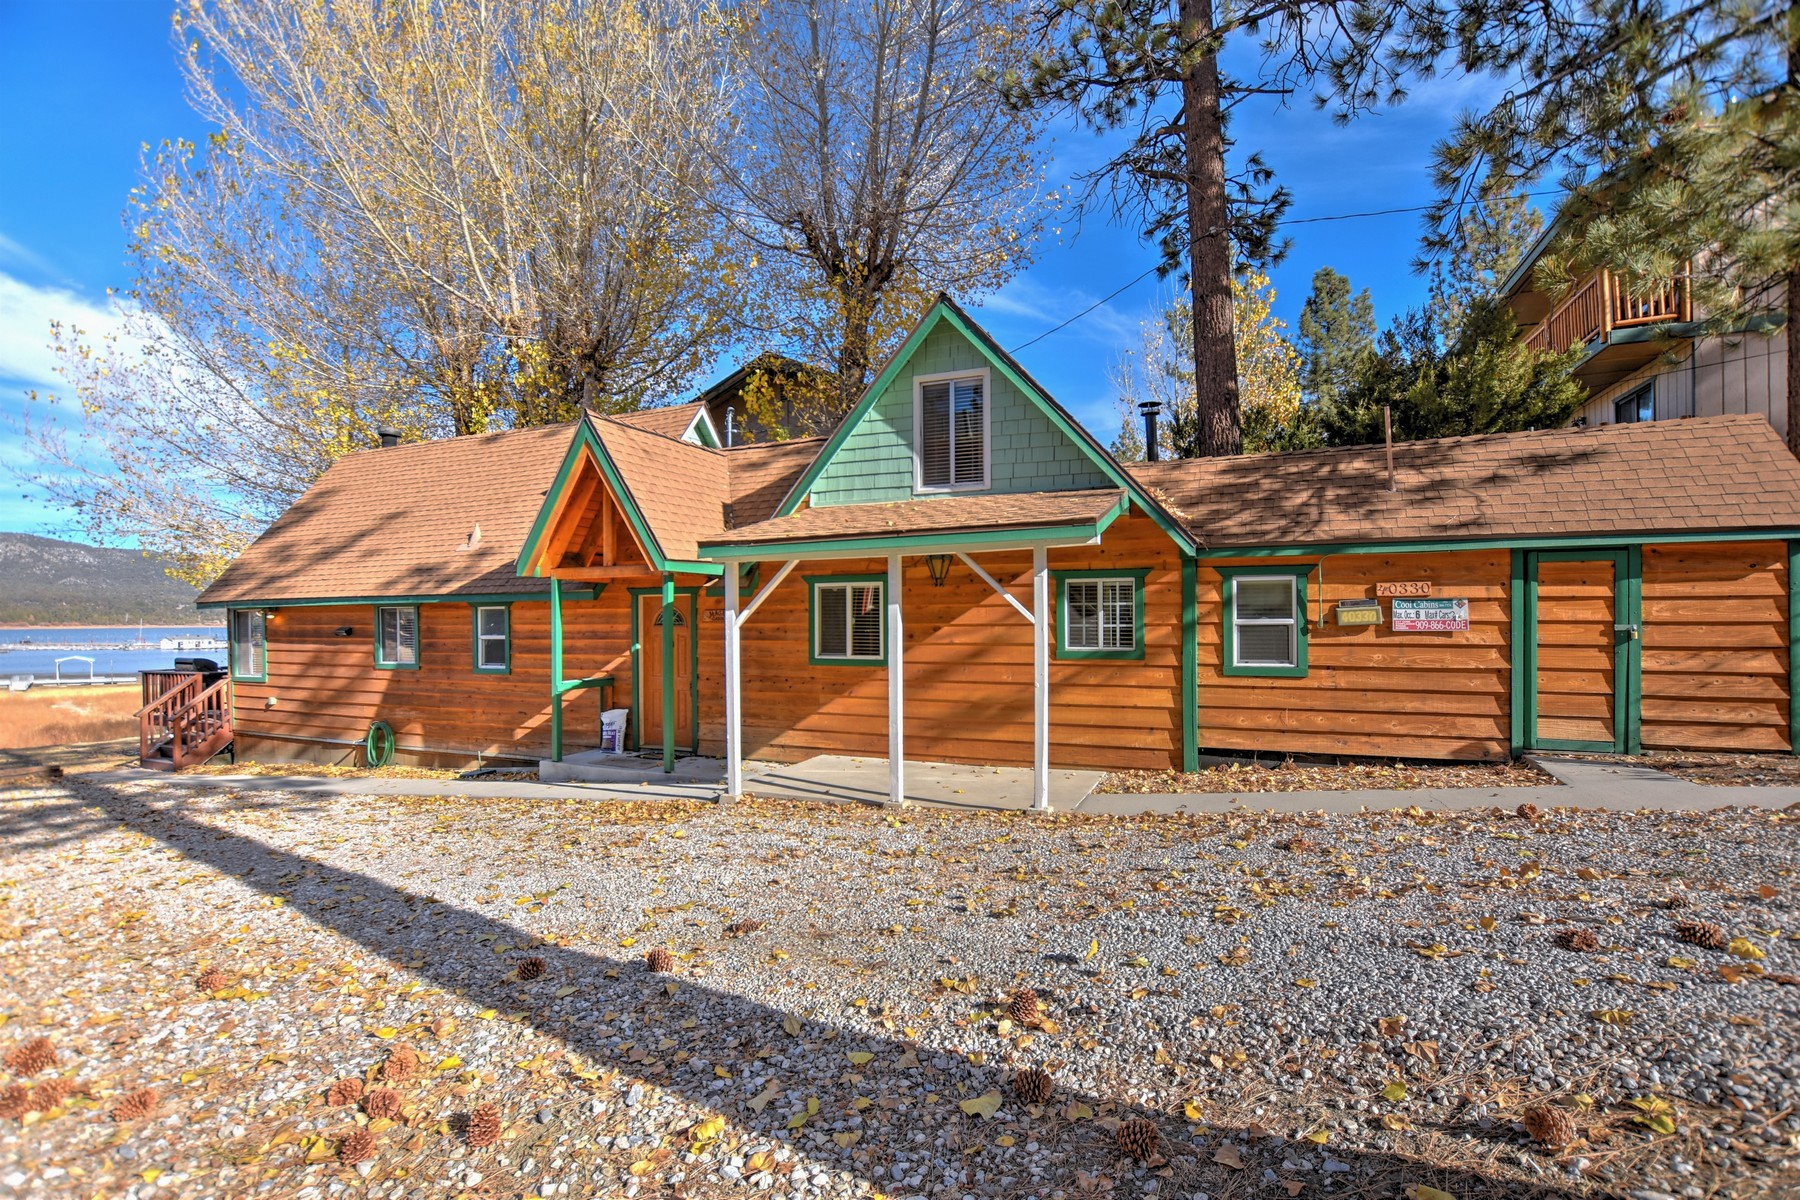 Single Family Home for Sale at 40330 Lakeview Drive, Big Bear Lake, CA 92315 40330 Lakeview Drive Big Bear Lake, California 92315 United States